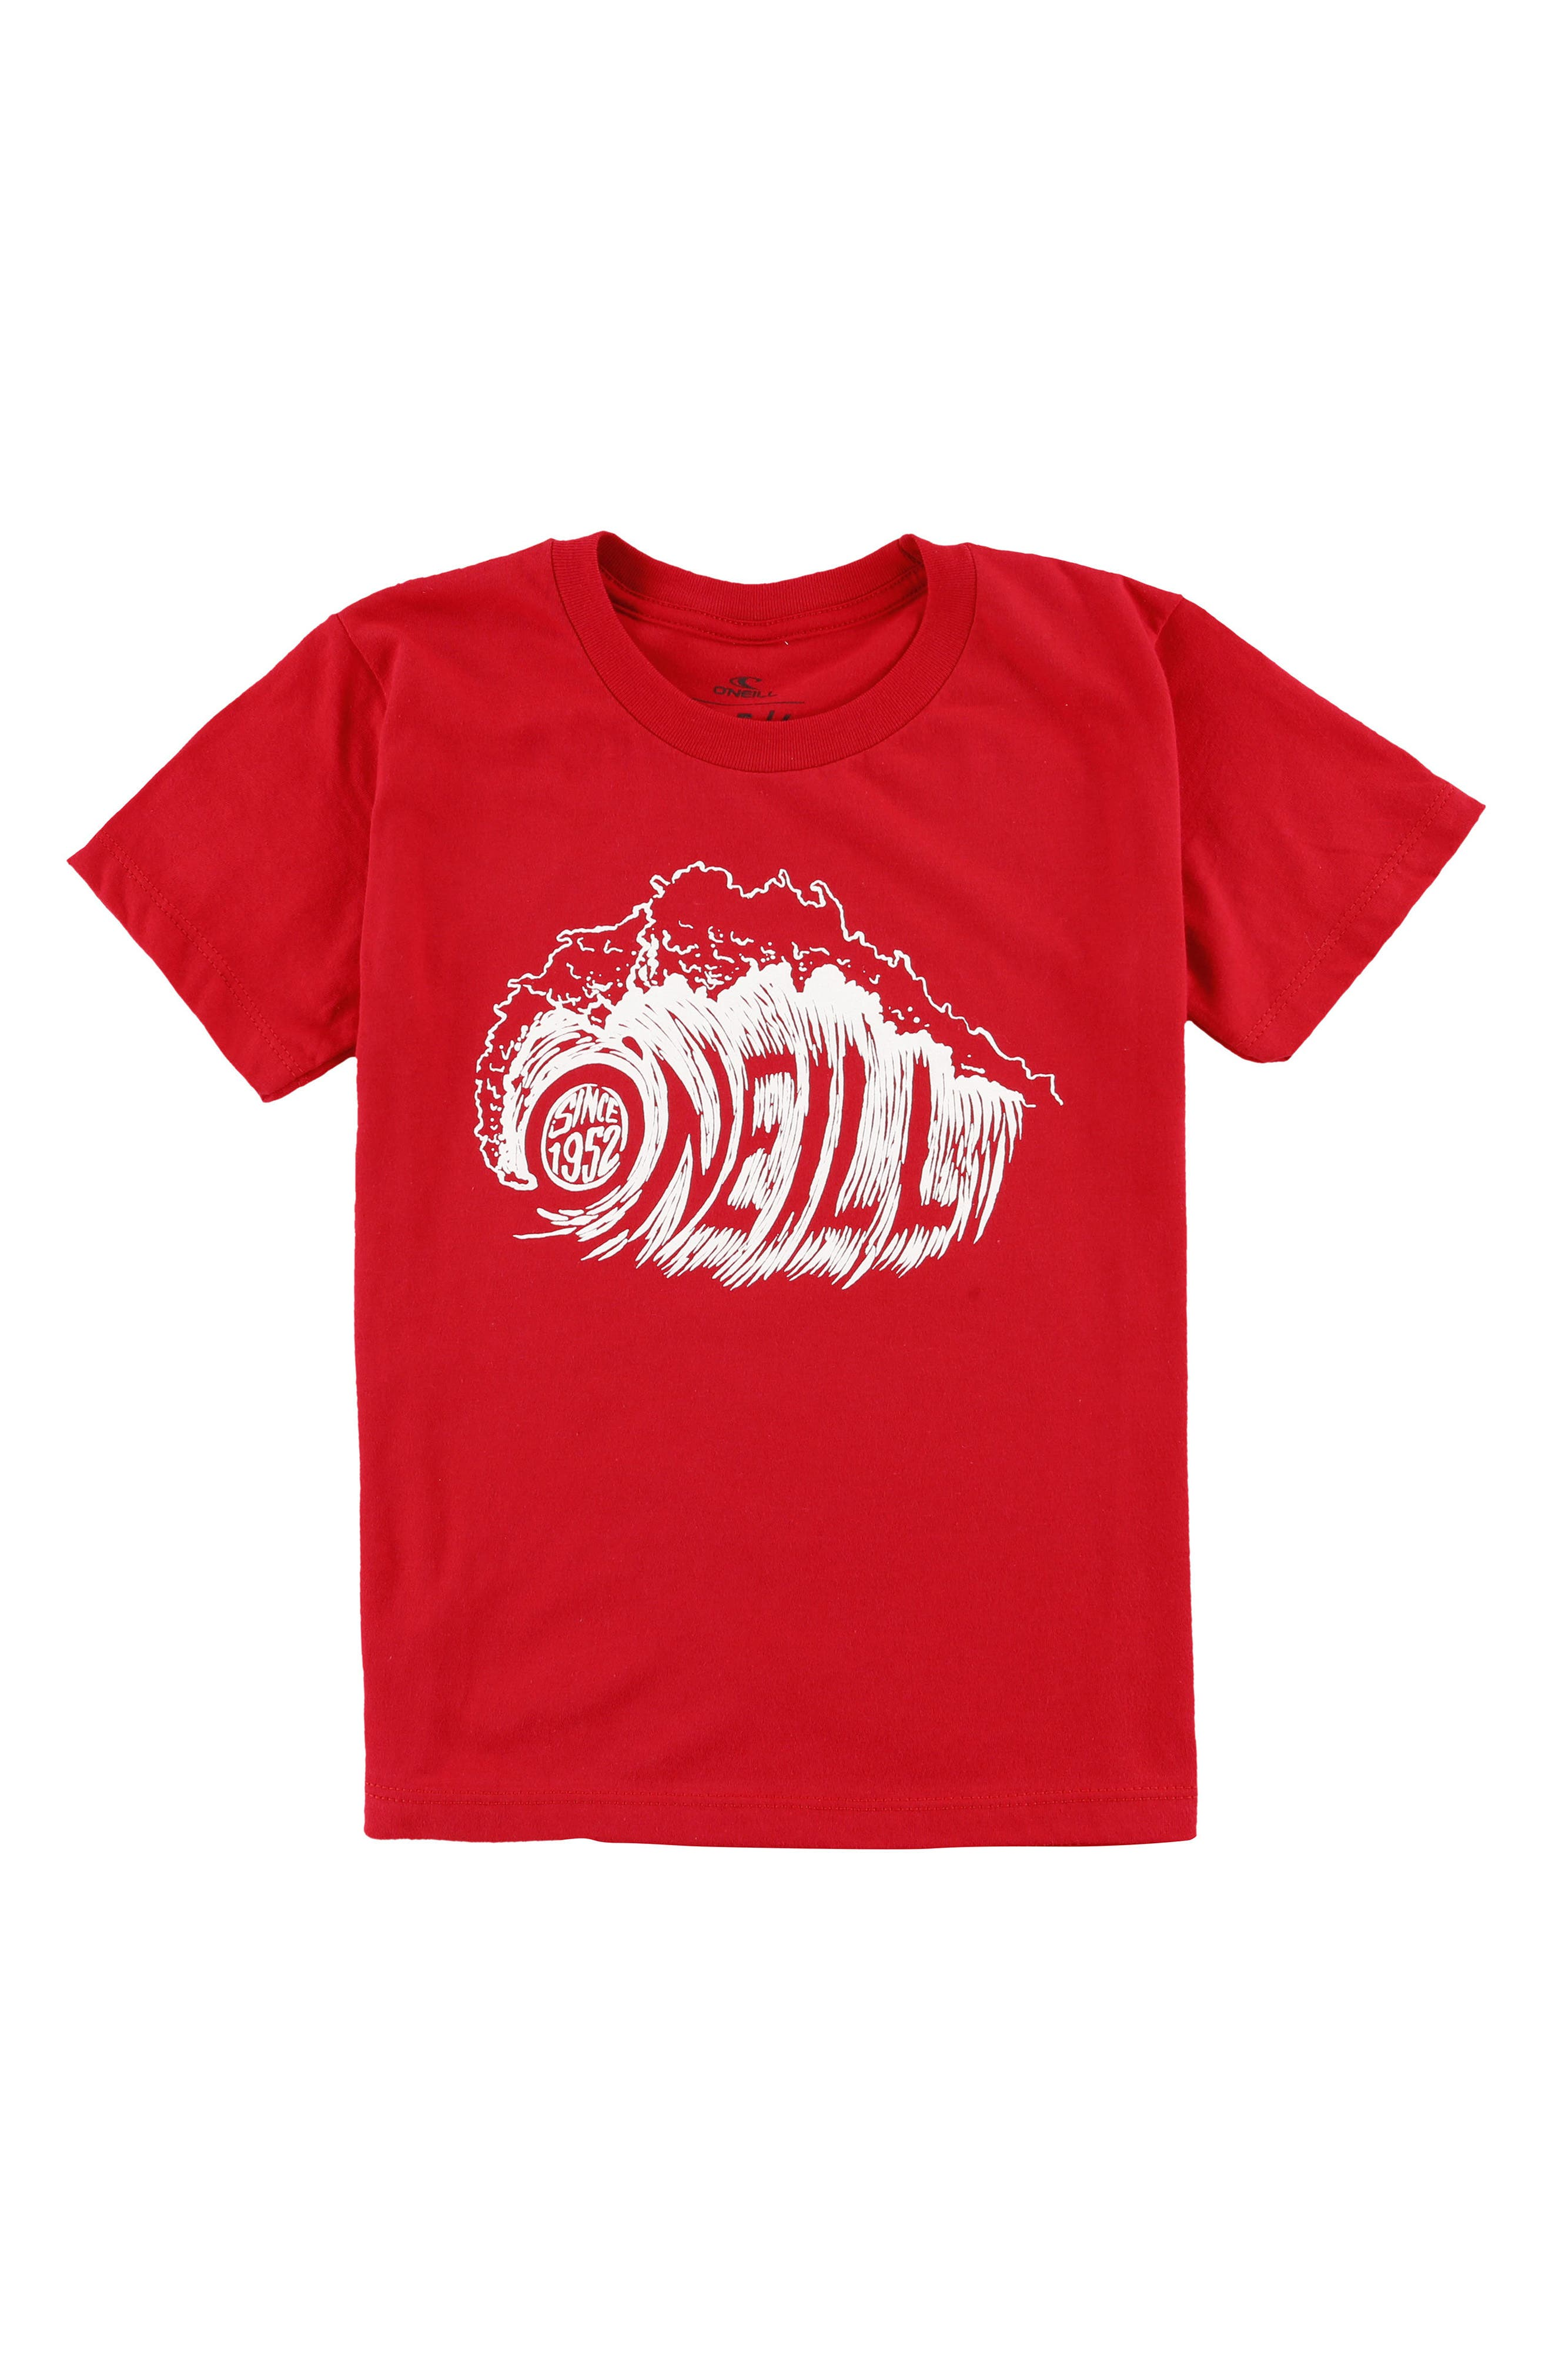 Sandspit Graphic T-Shirt,                             Main thumbnail 1, color,                             Heather Red